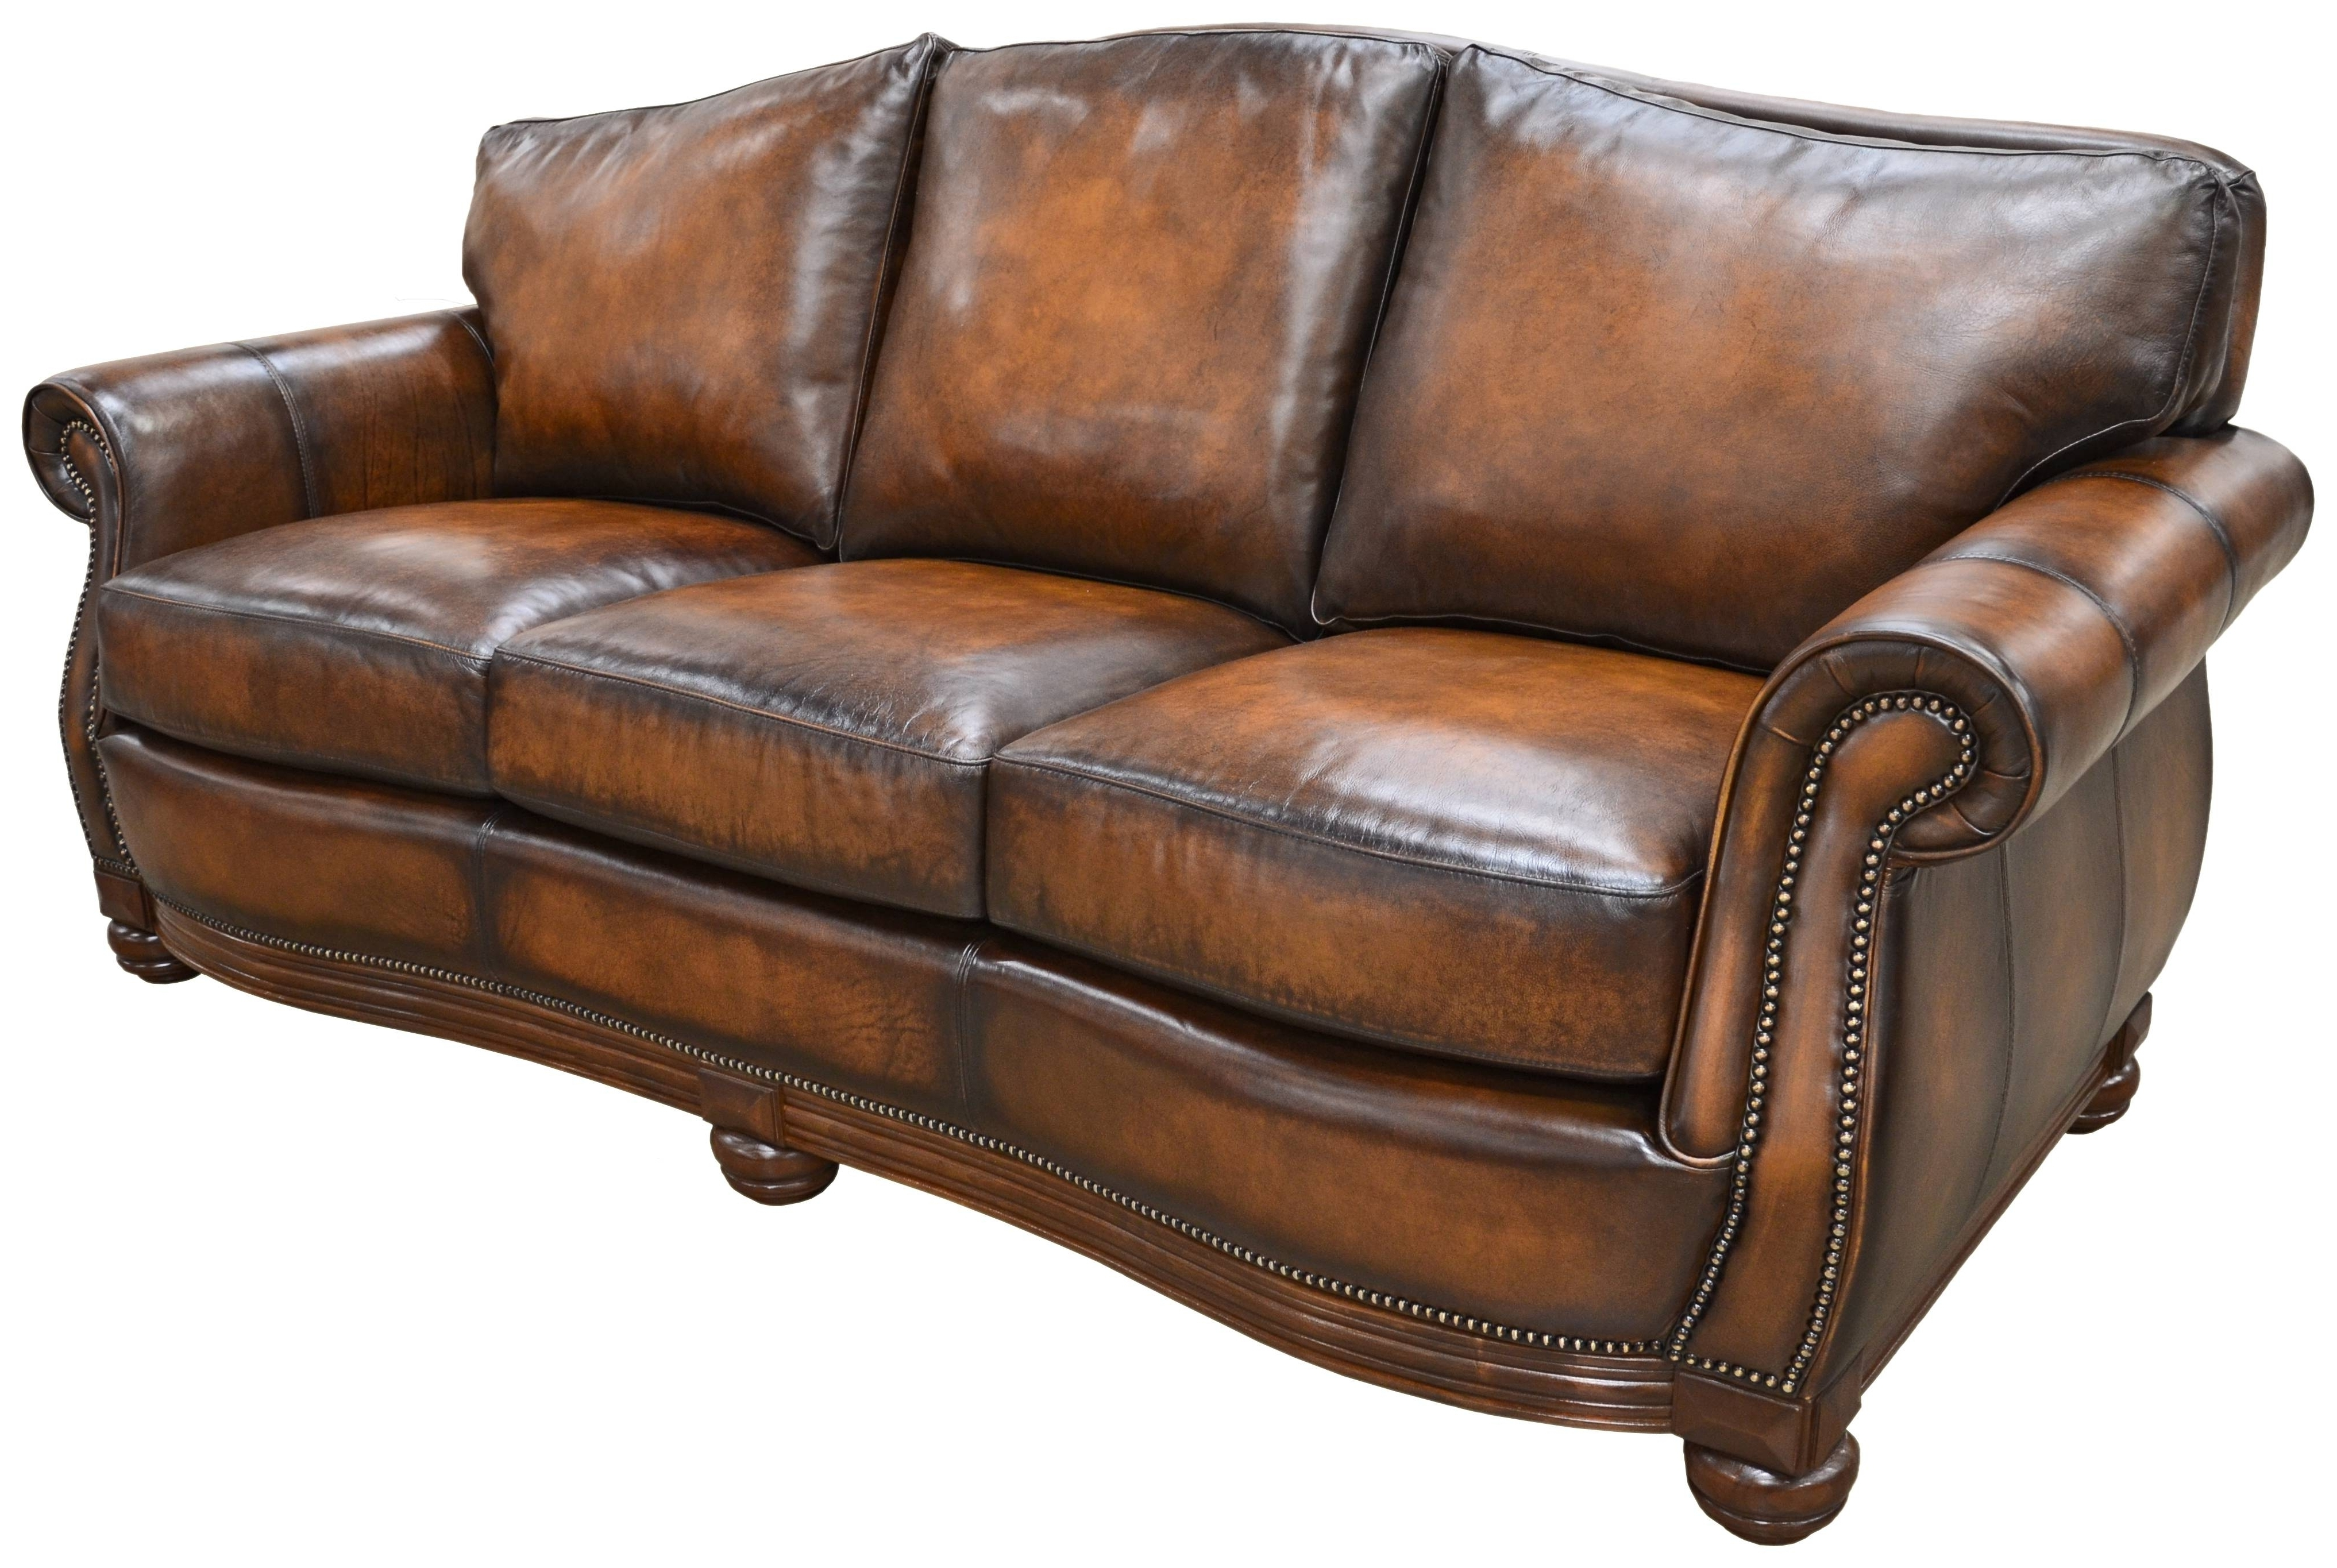 Most Recently Released Aniline Leather Sofa Degreaser • Leather Sofa Throughout Aniline Leather Sofas (View 14 of 15)